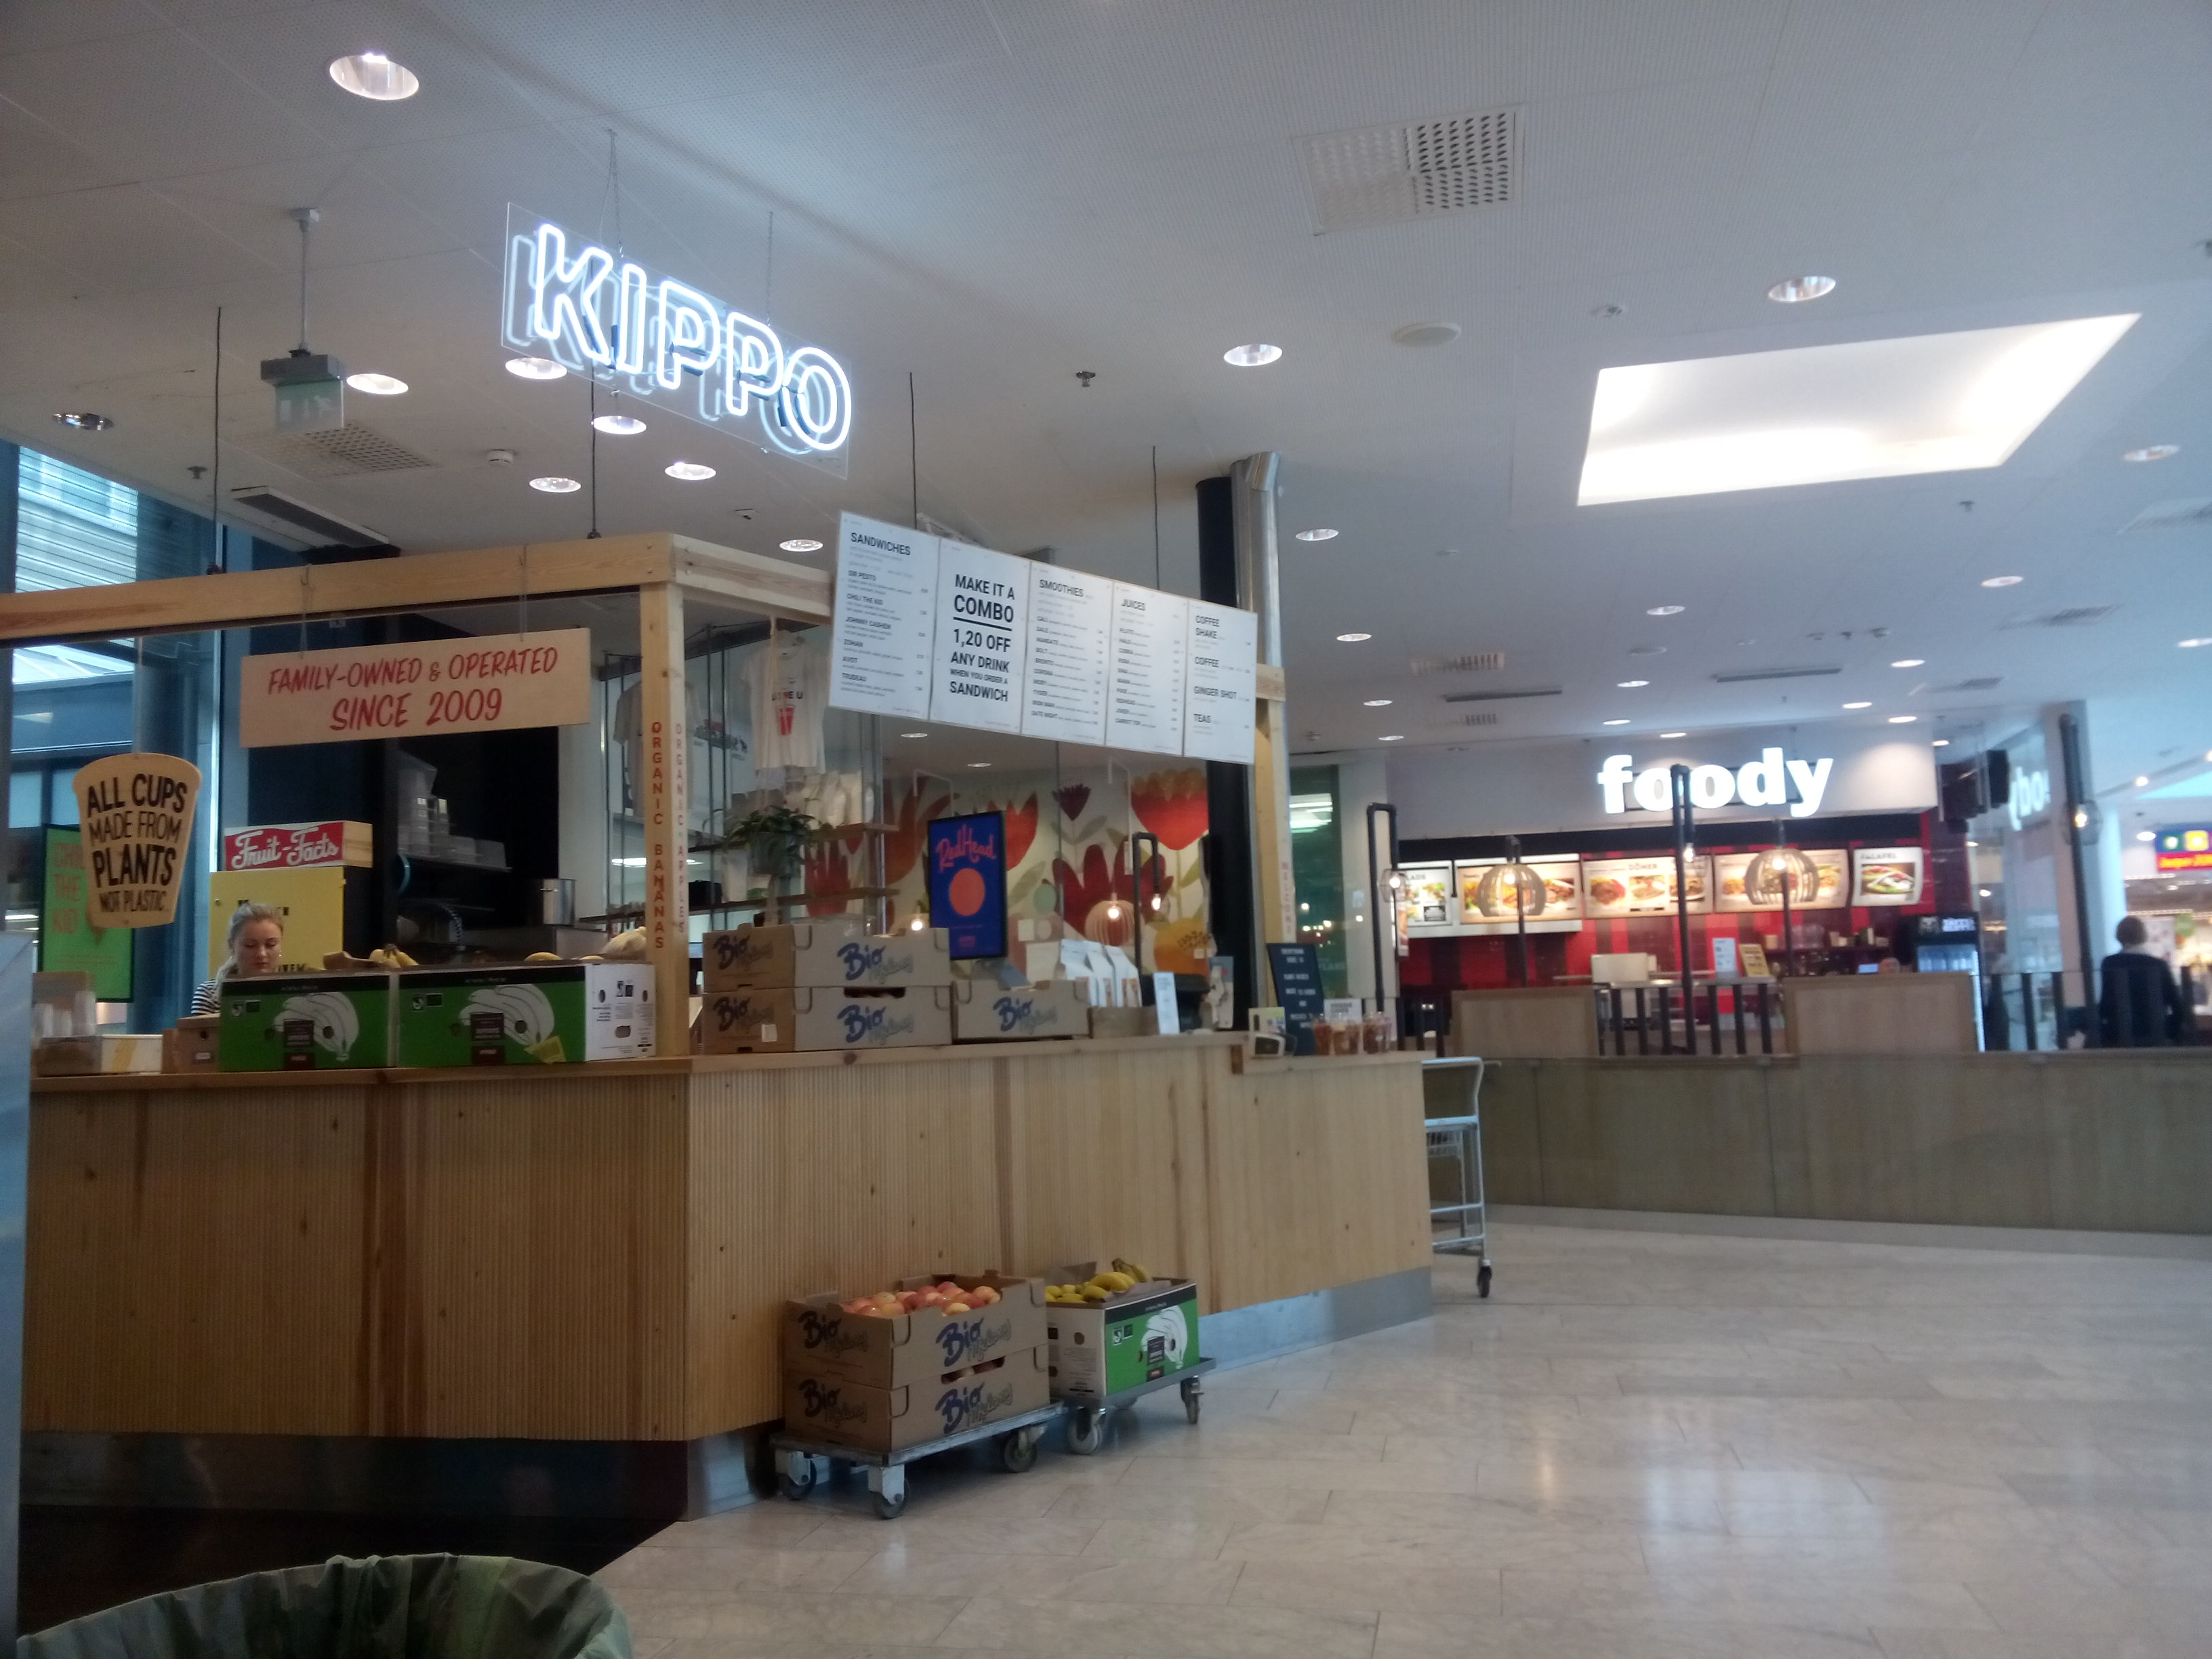 A food kiosk inside a mall with a neon sign (Kippo), wooden counter and boxes of fruit around